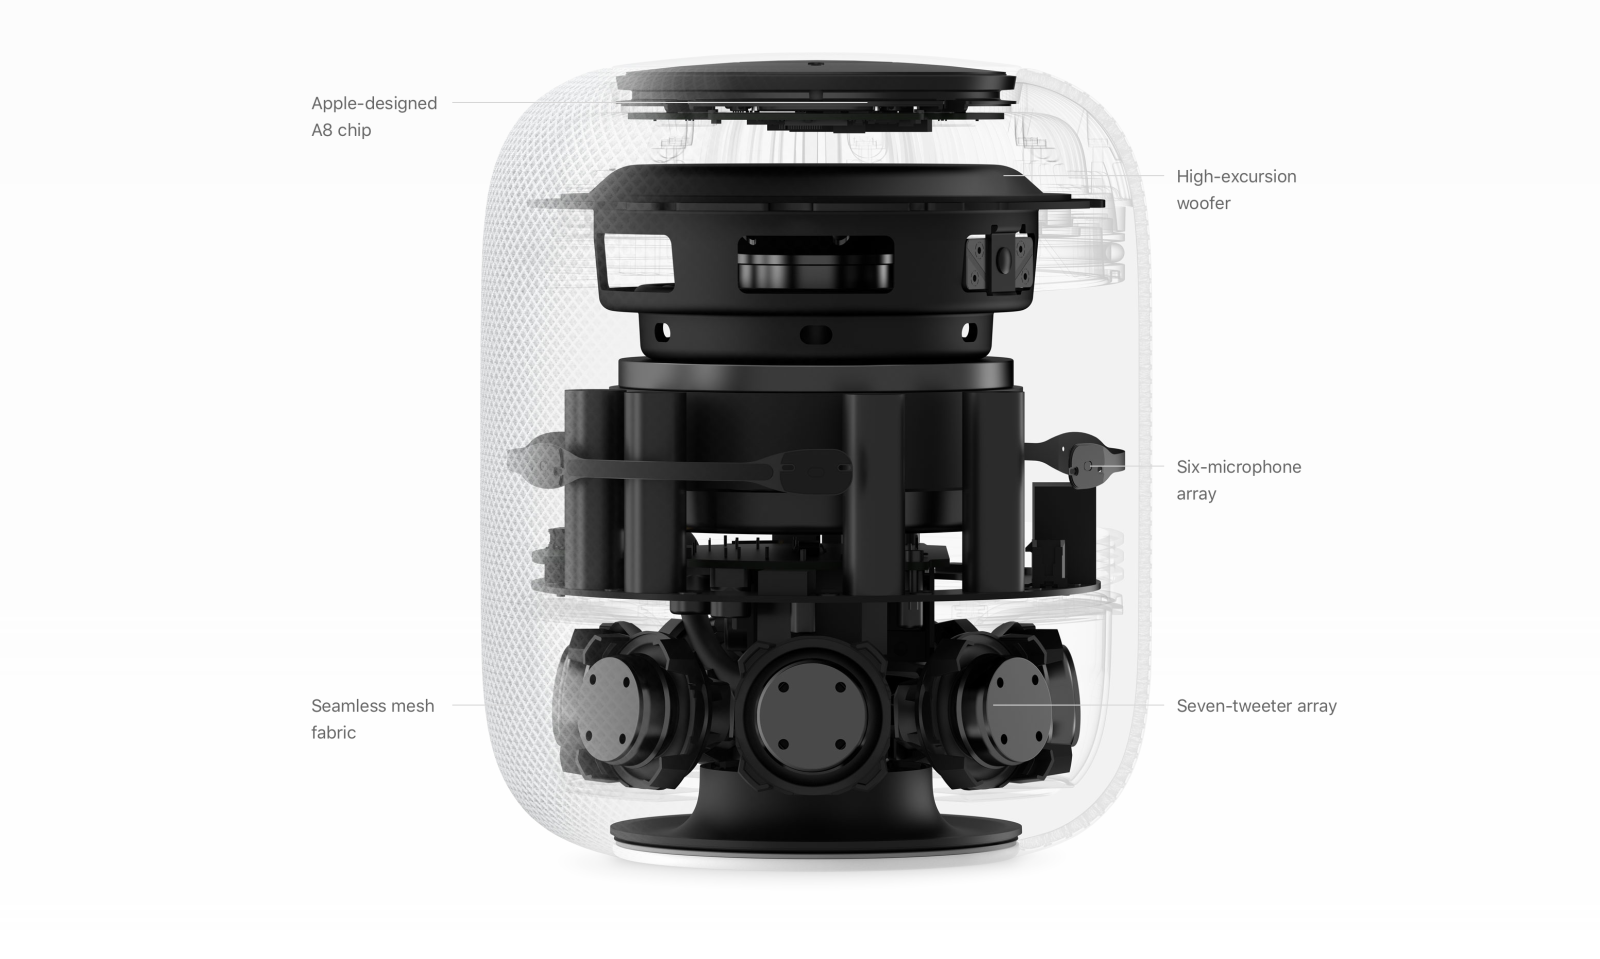 HomePod will support lossless FLAC audio playback as it appeals to